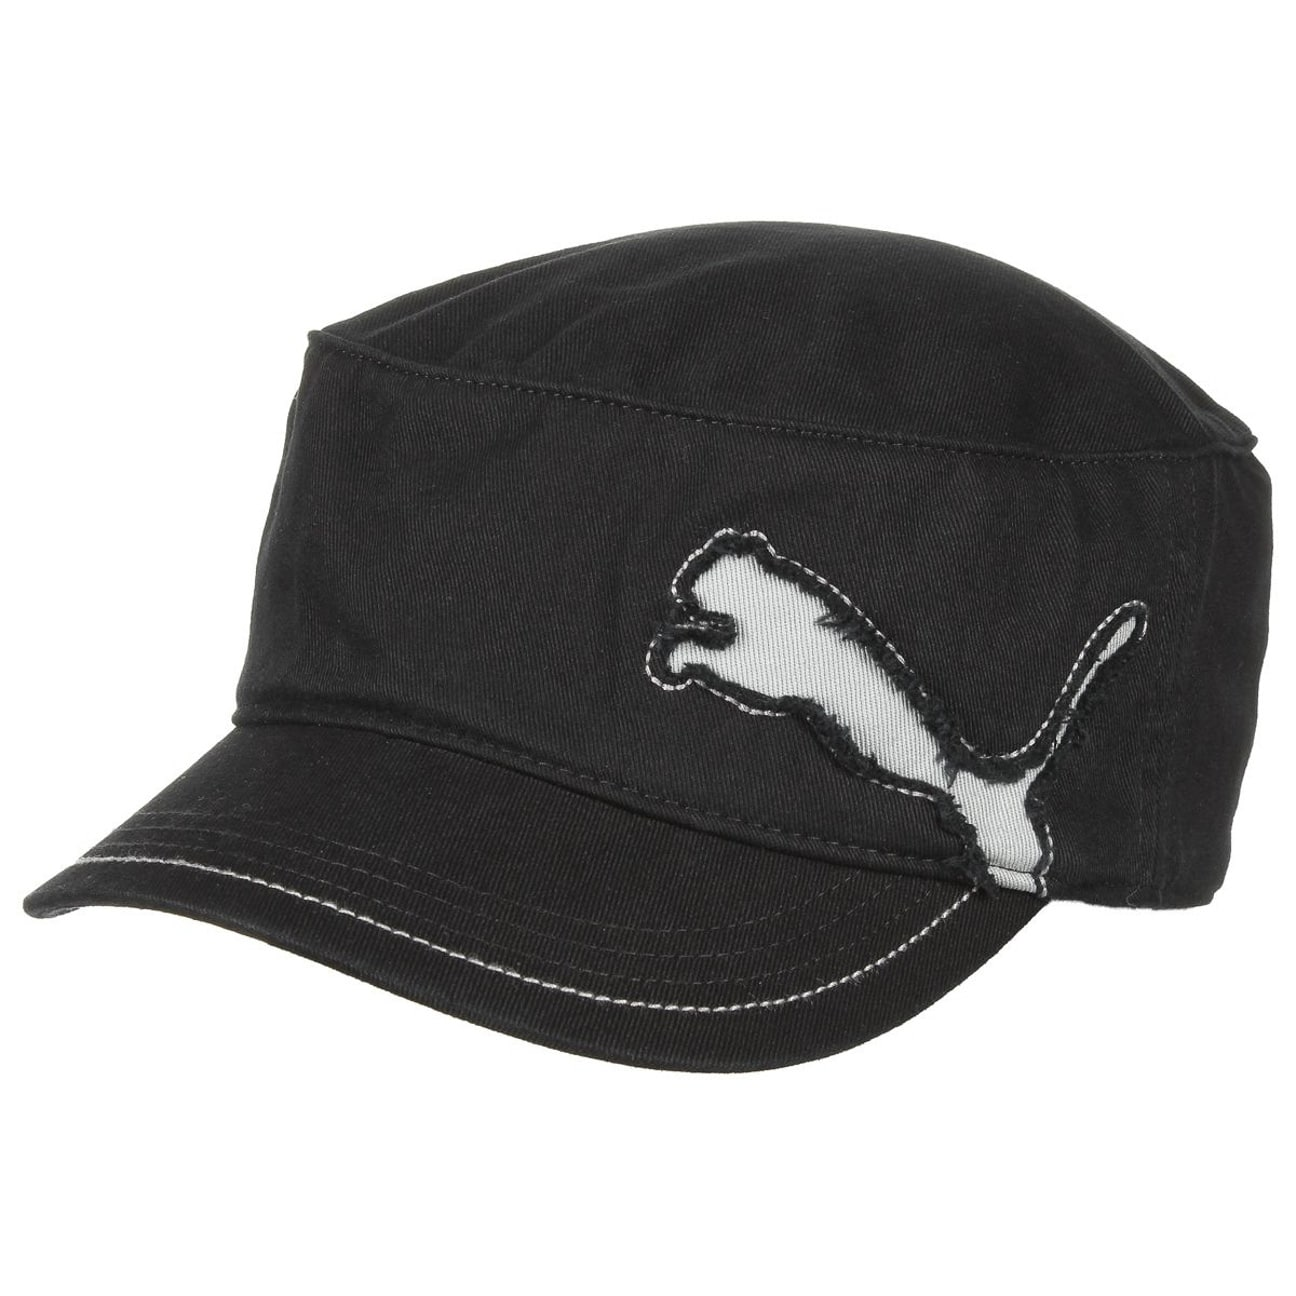 a906f7d9 ... Fairview Military Cap by PUMA - black 1